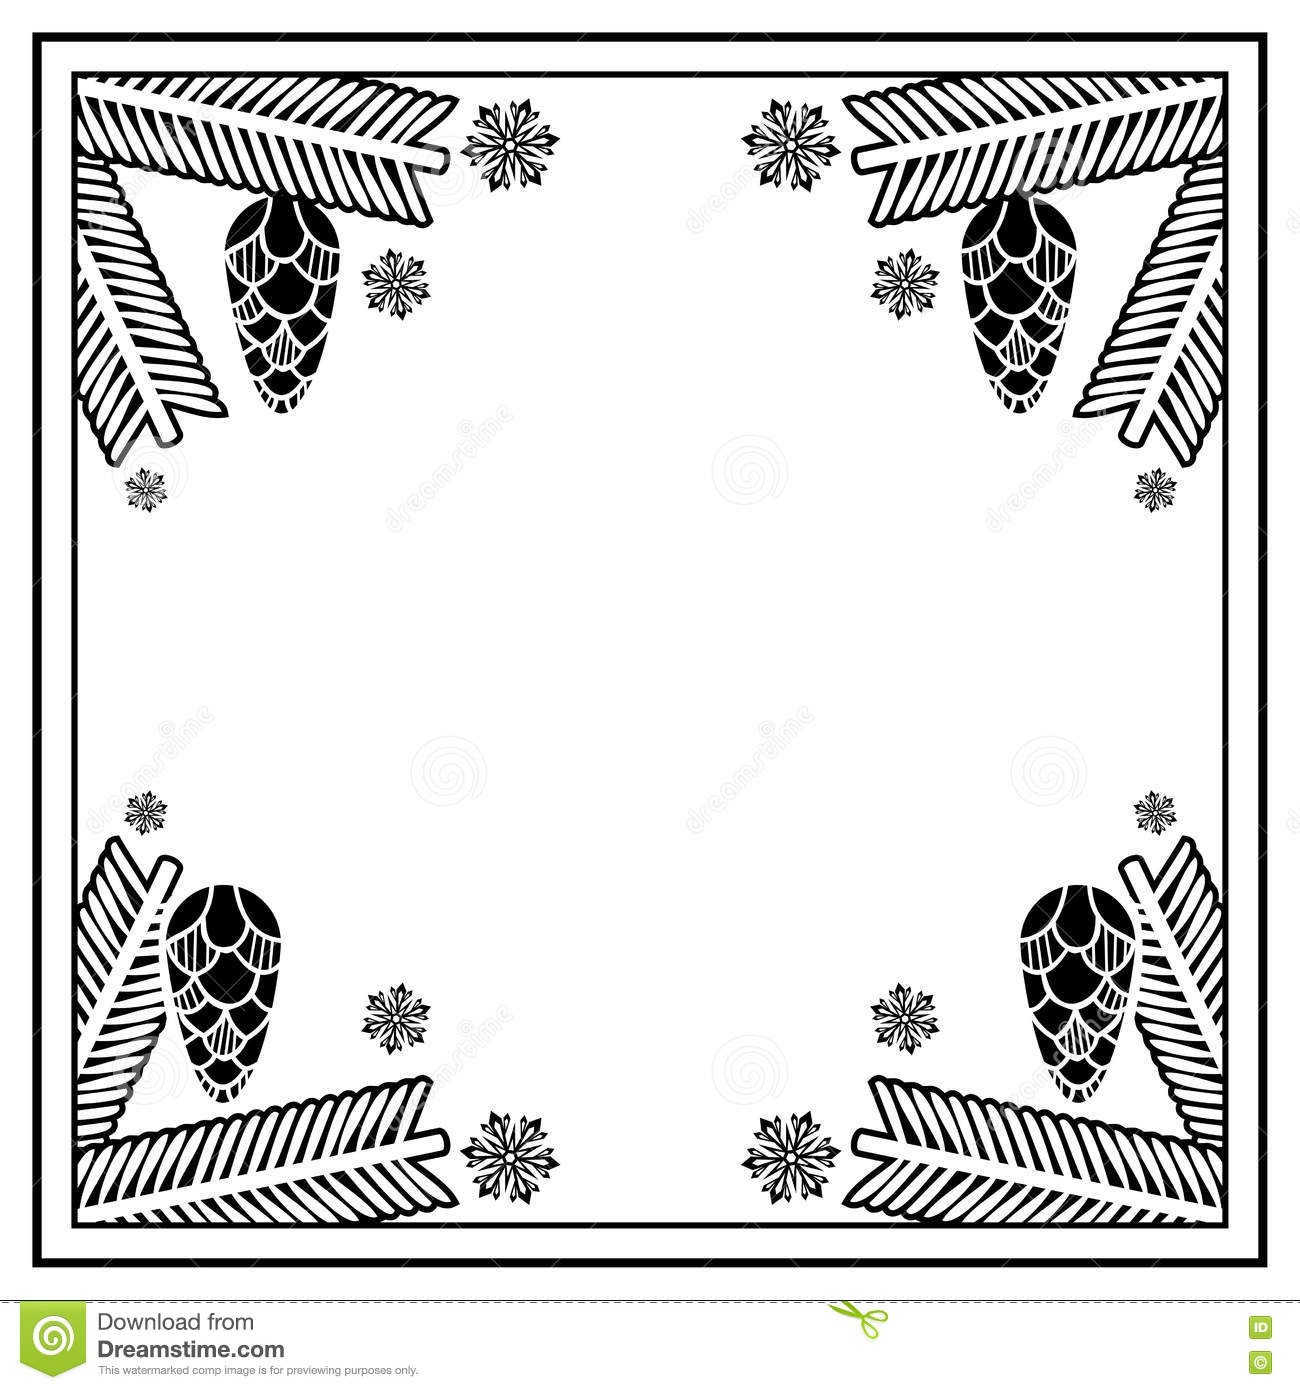 e44b7132be7 Square frame with pine cones silhouettes. Copy space. Christmas design  decor element. Raster clip art.